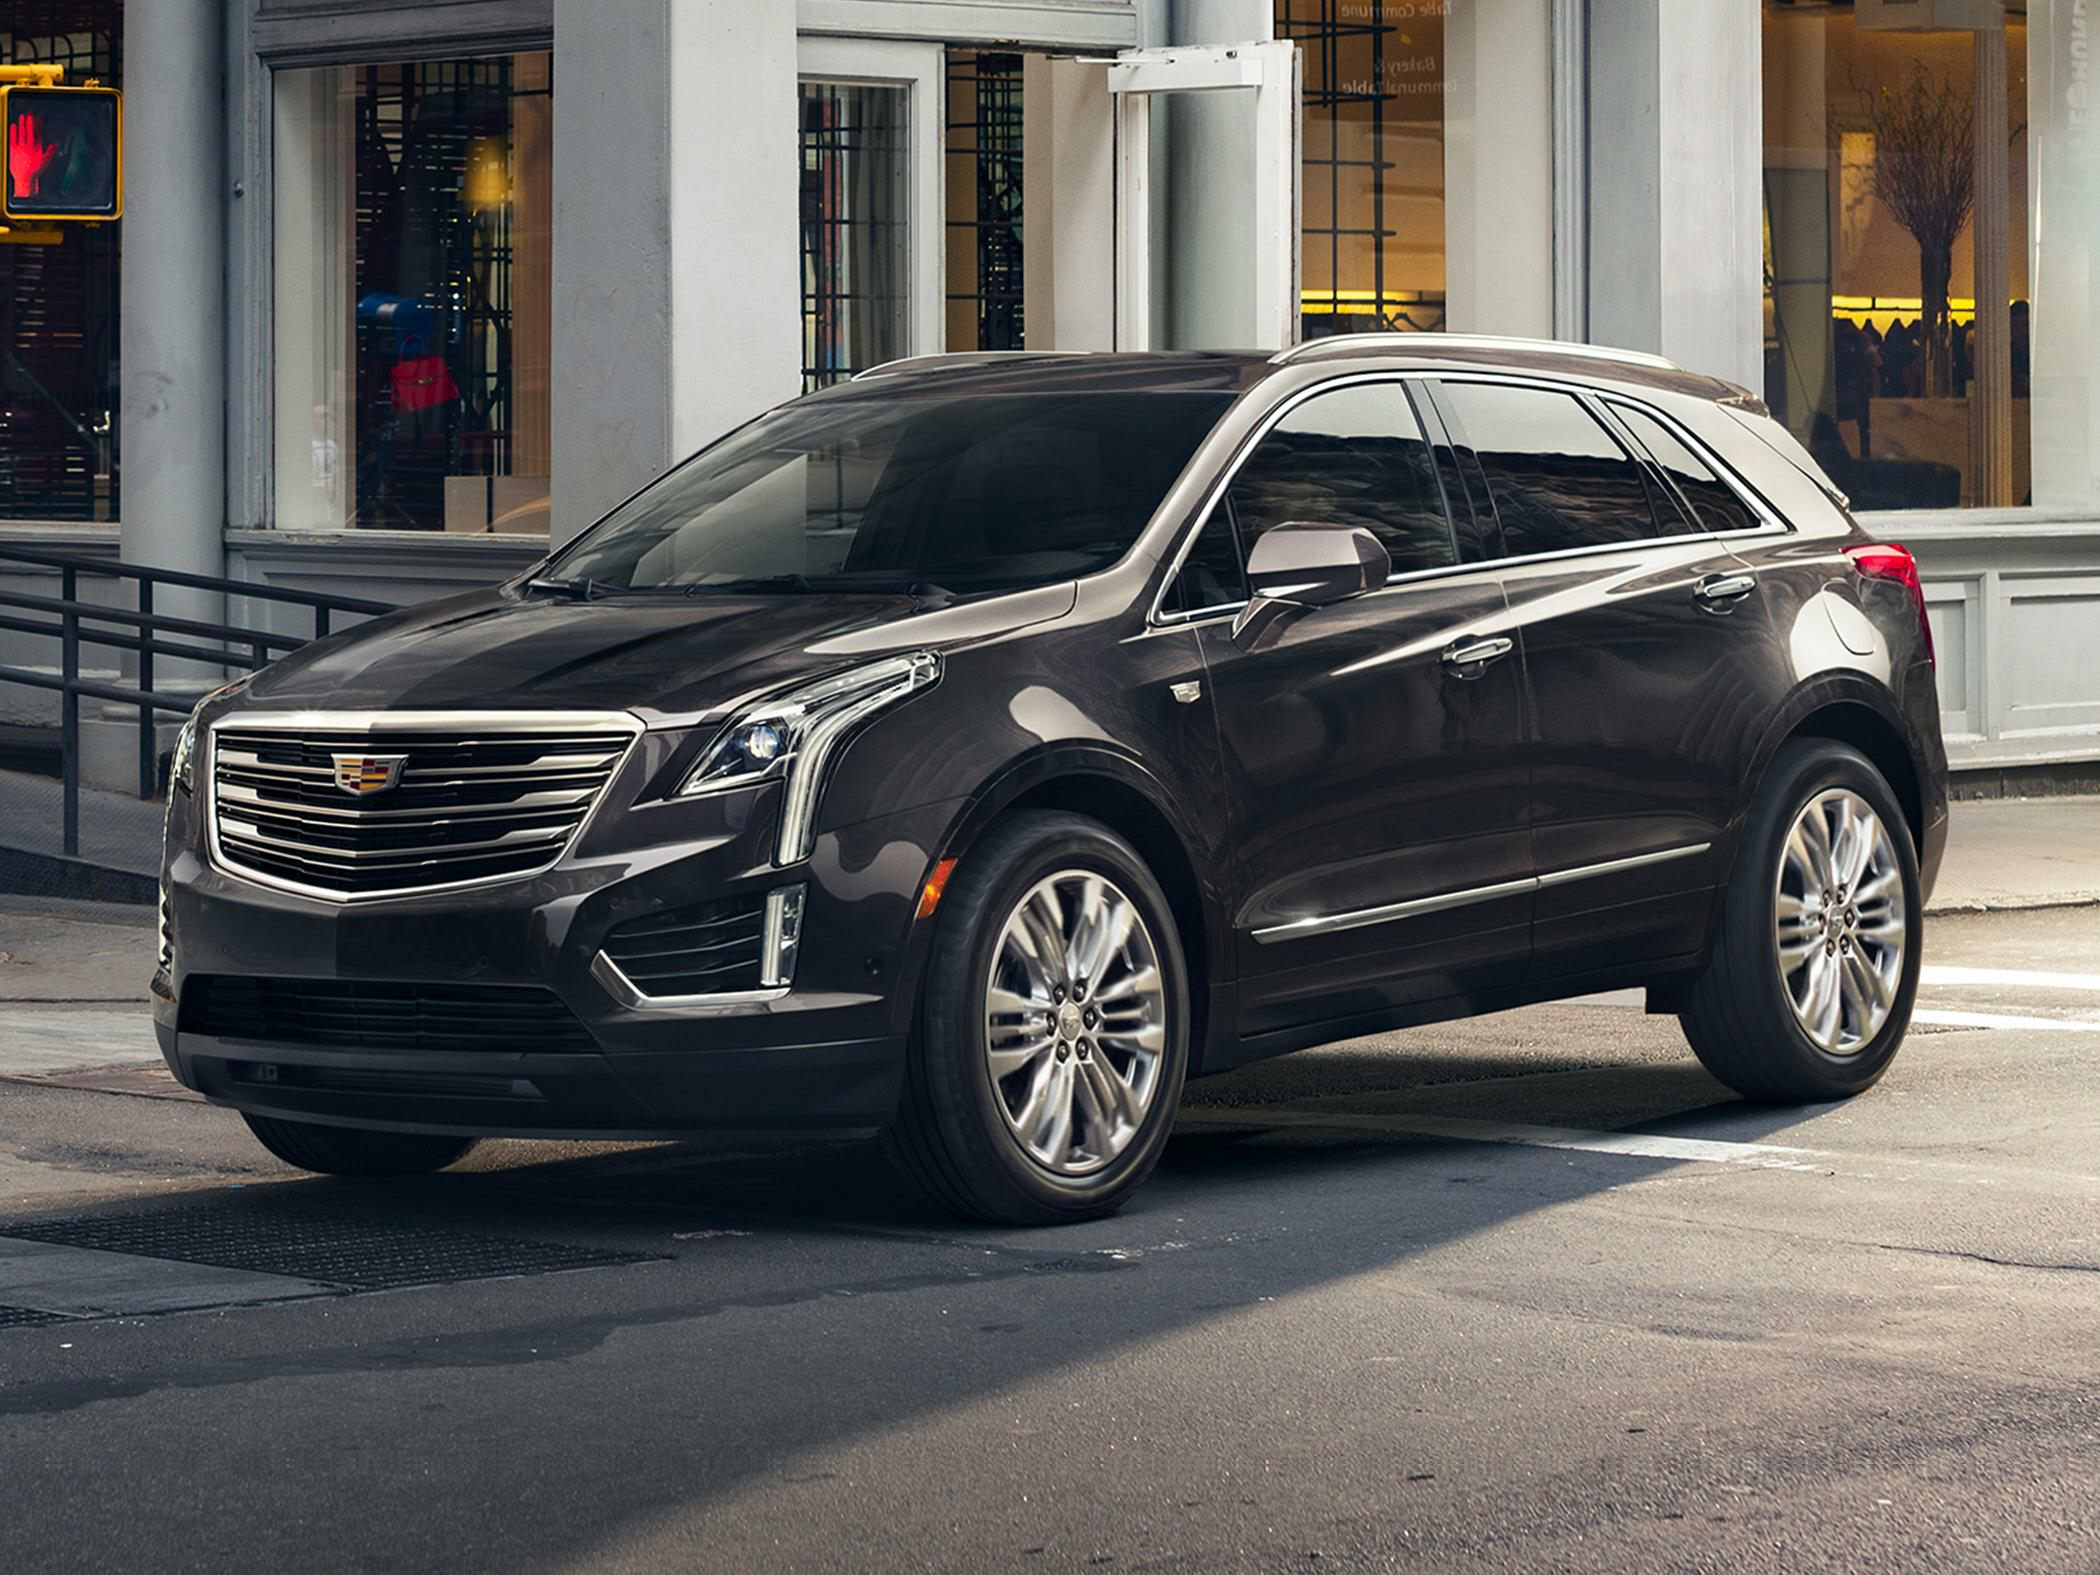 2018 Cadillac Xt5 Styles Features Highlights